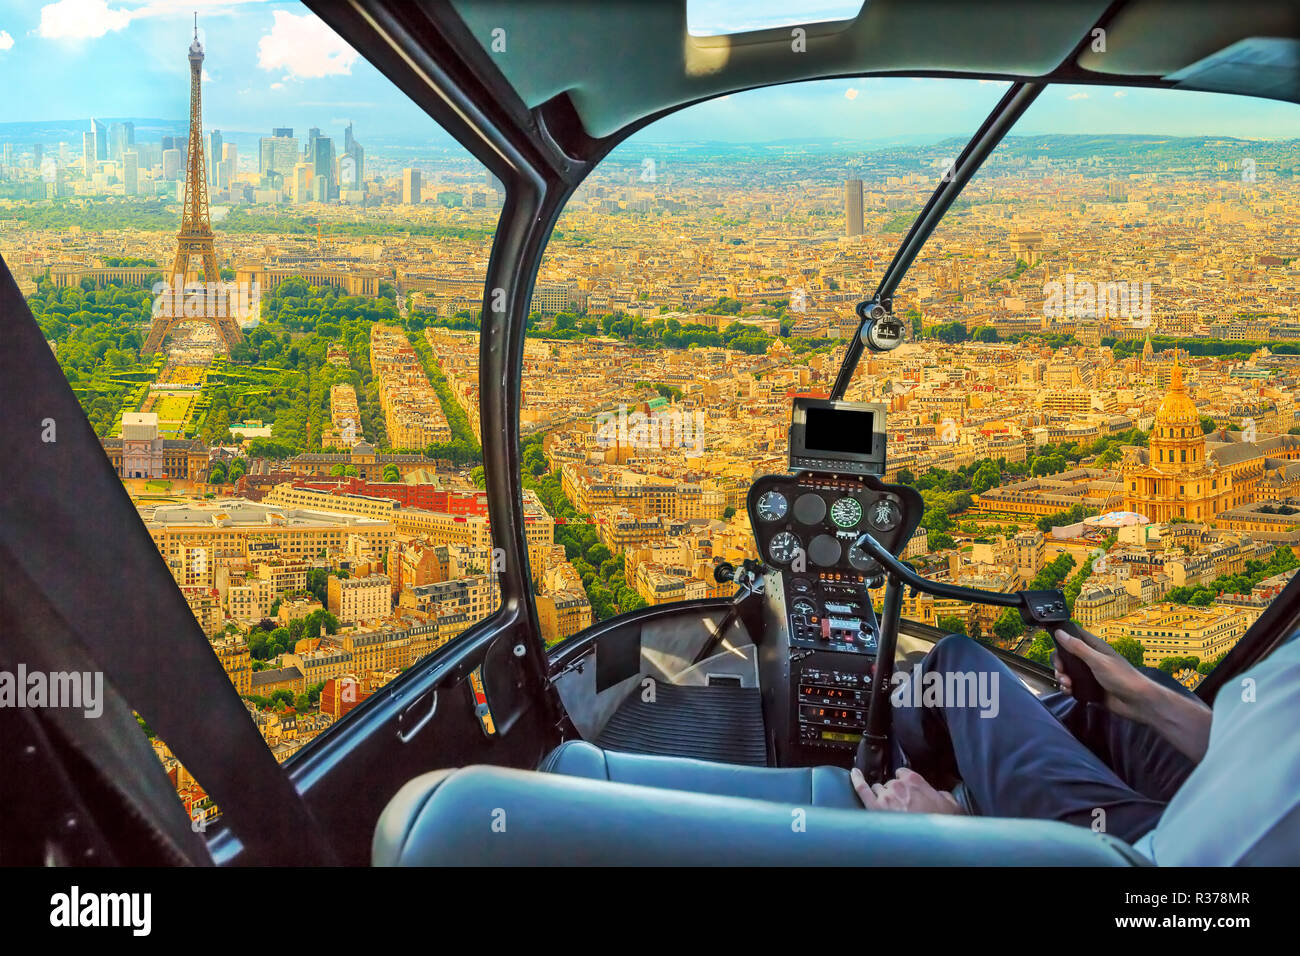 Helicopter cockpit flying on Panorama of Tour Eiffel and national residence of the Invalids in Paris, French capital, Europe. Scenic flight above Paris skyline and cityscape background. Stock Photo